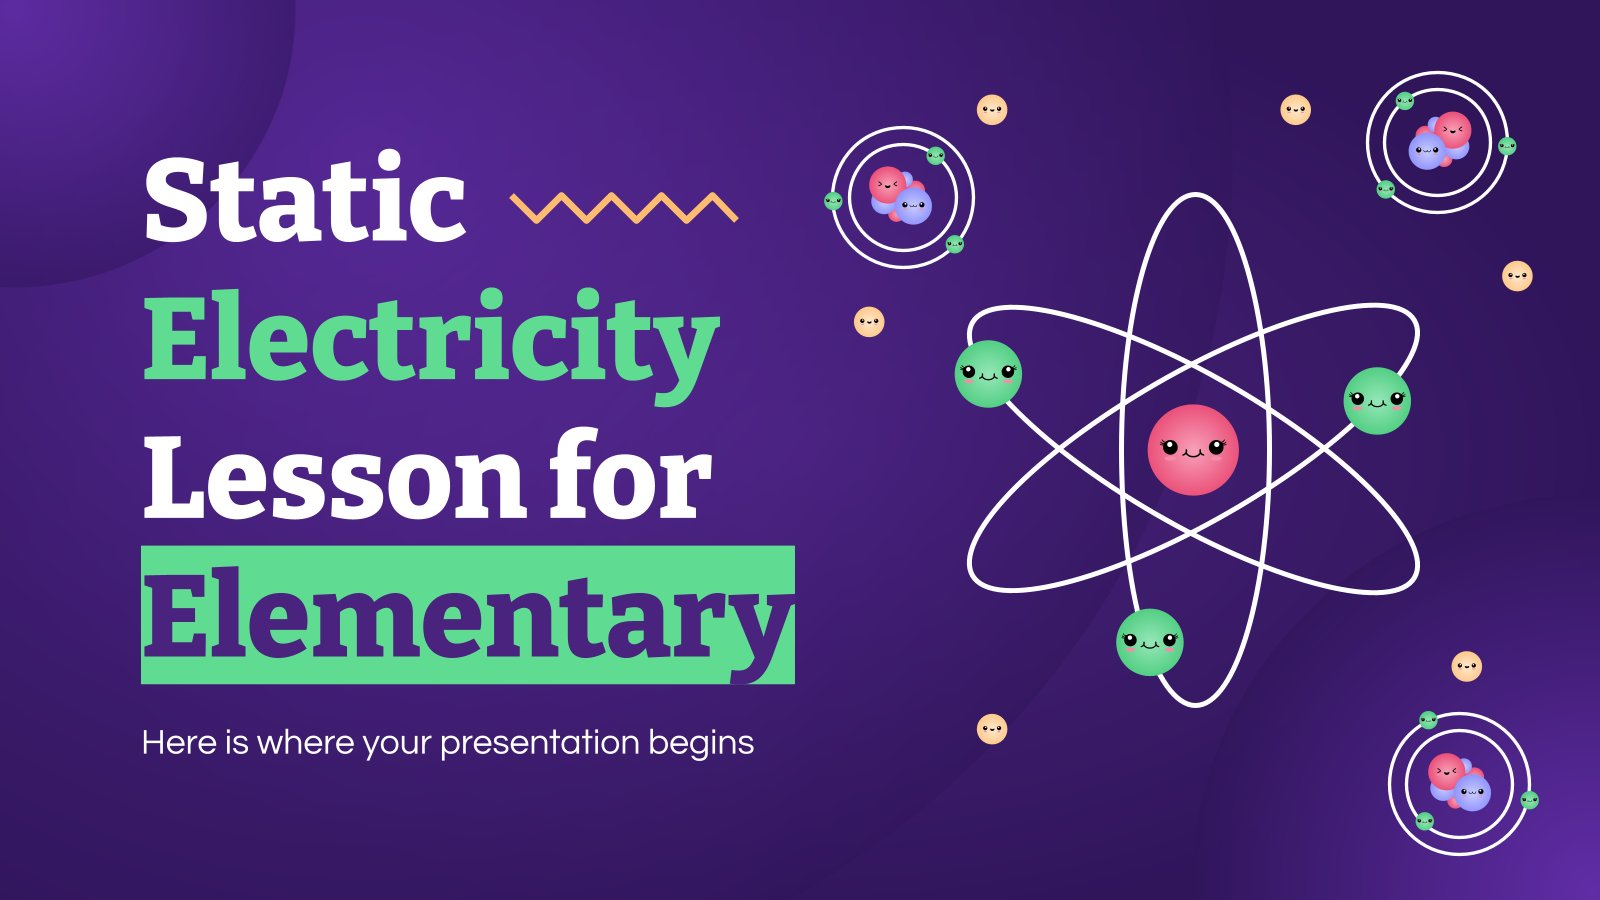 Static Electricity Lesson for Elementary presentation template